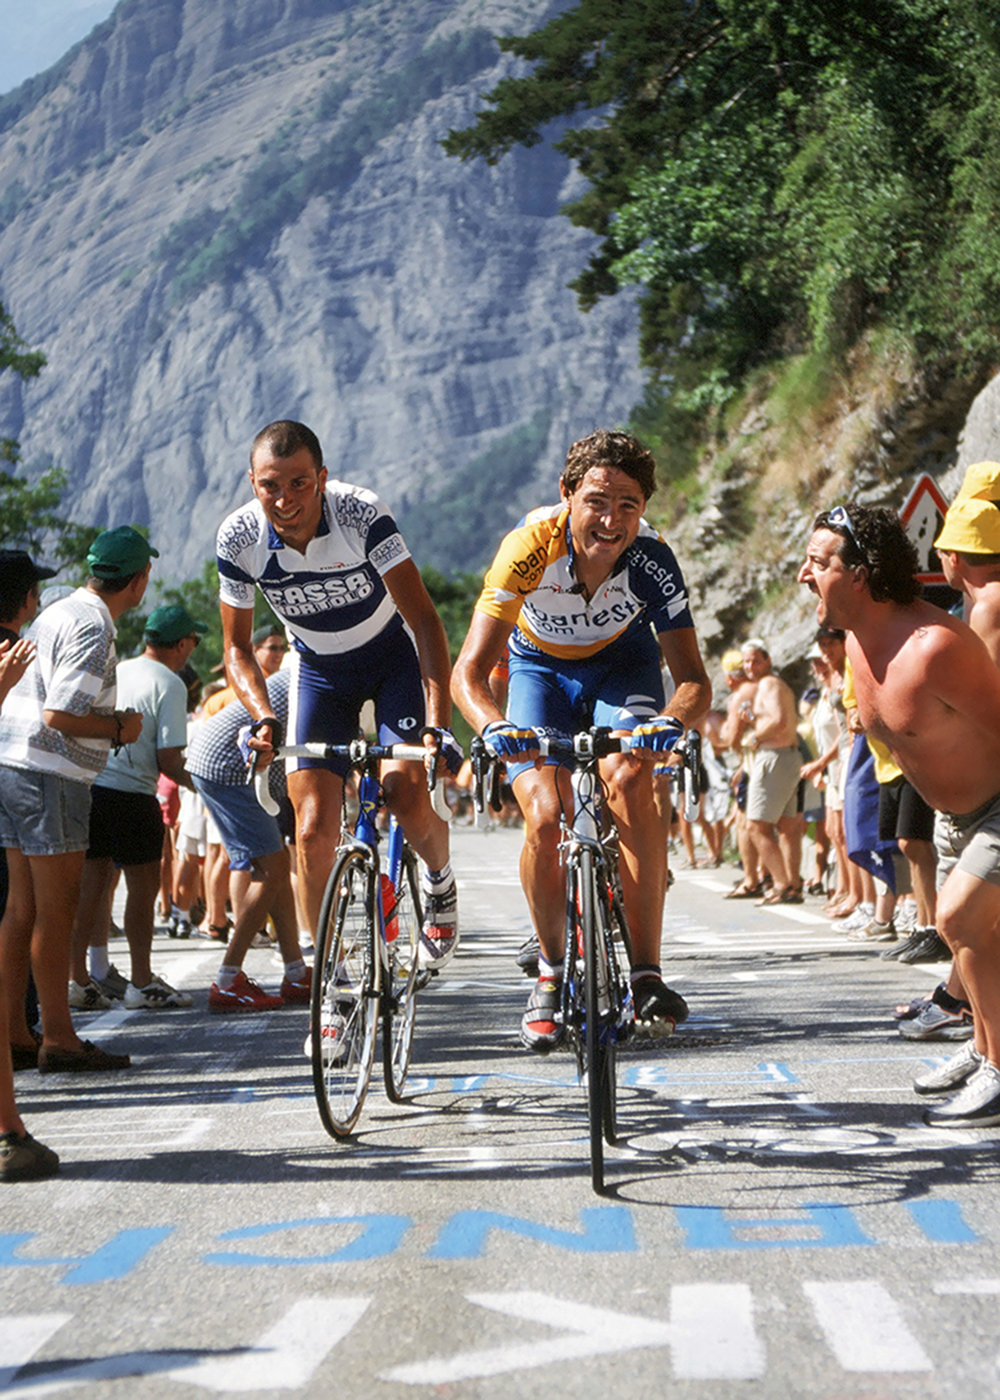 Ivan Basso & Francisco Mancebo climbing Alpe d'Huez at the Tour de France. Shot on film.